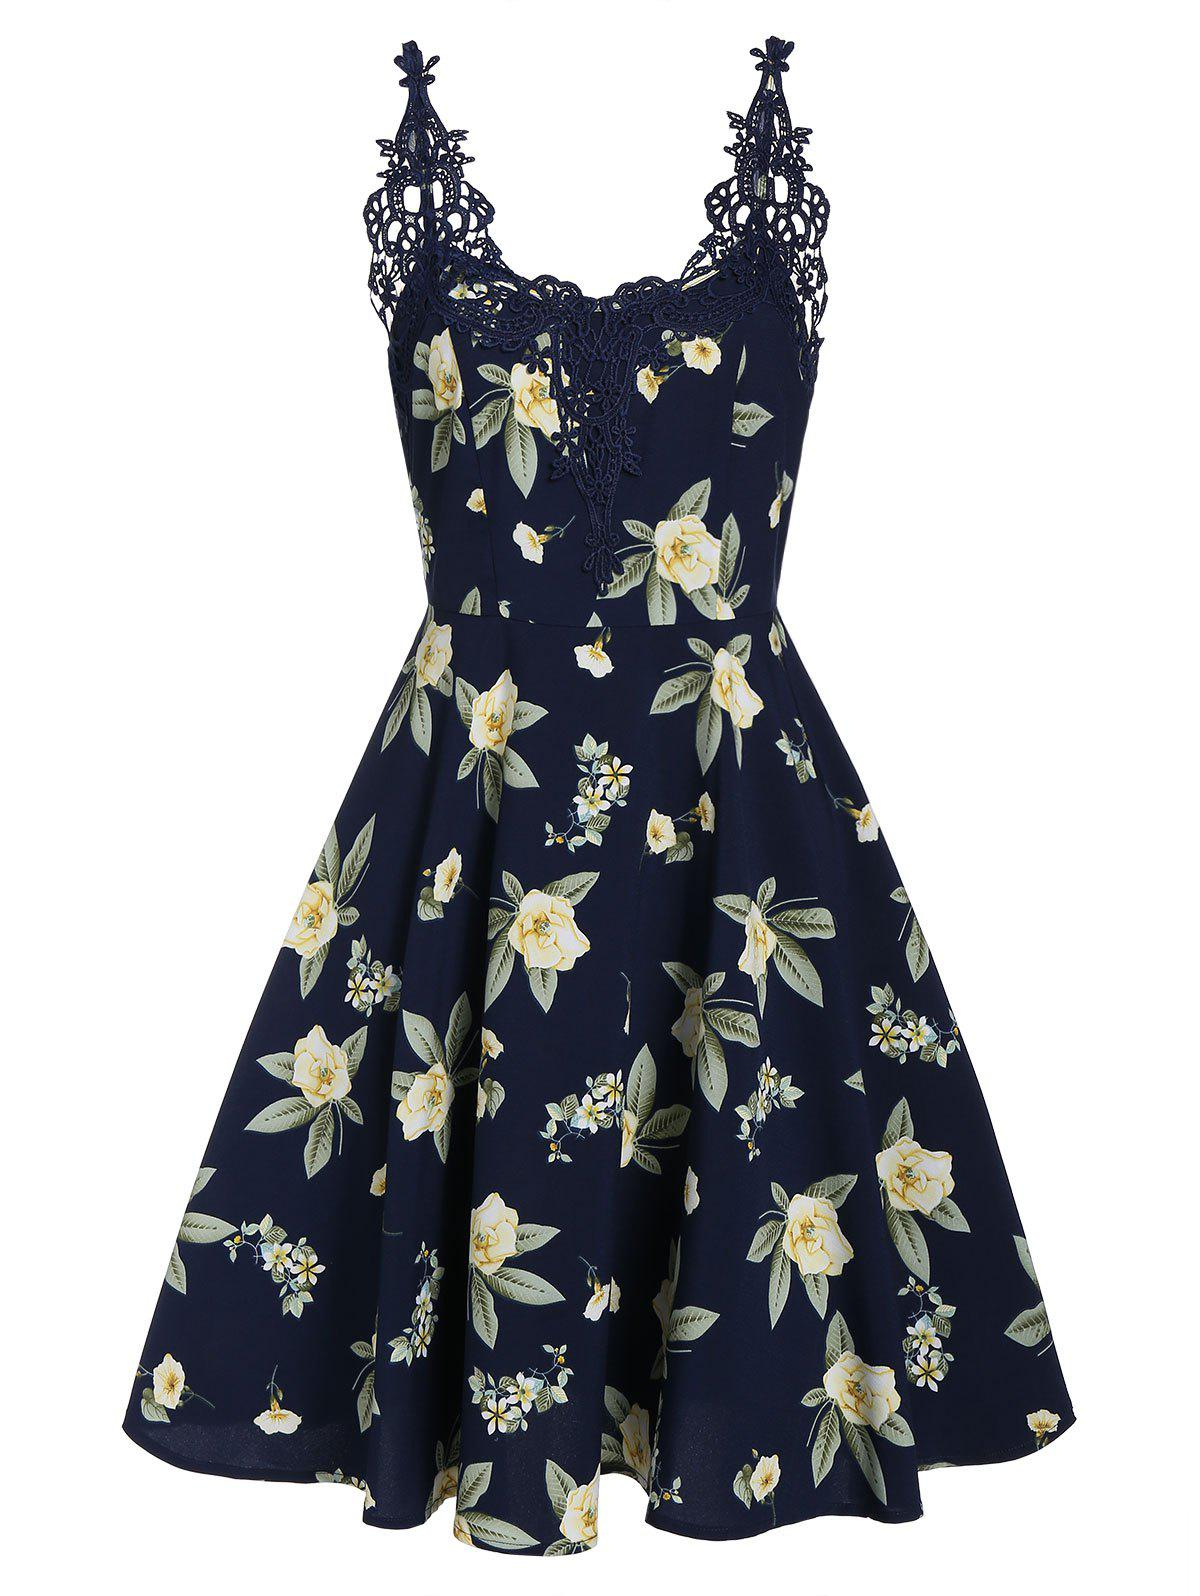 Discount Floral Print Lace Panel Fit And Flare Dress